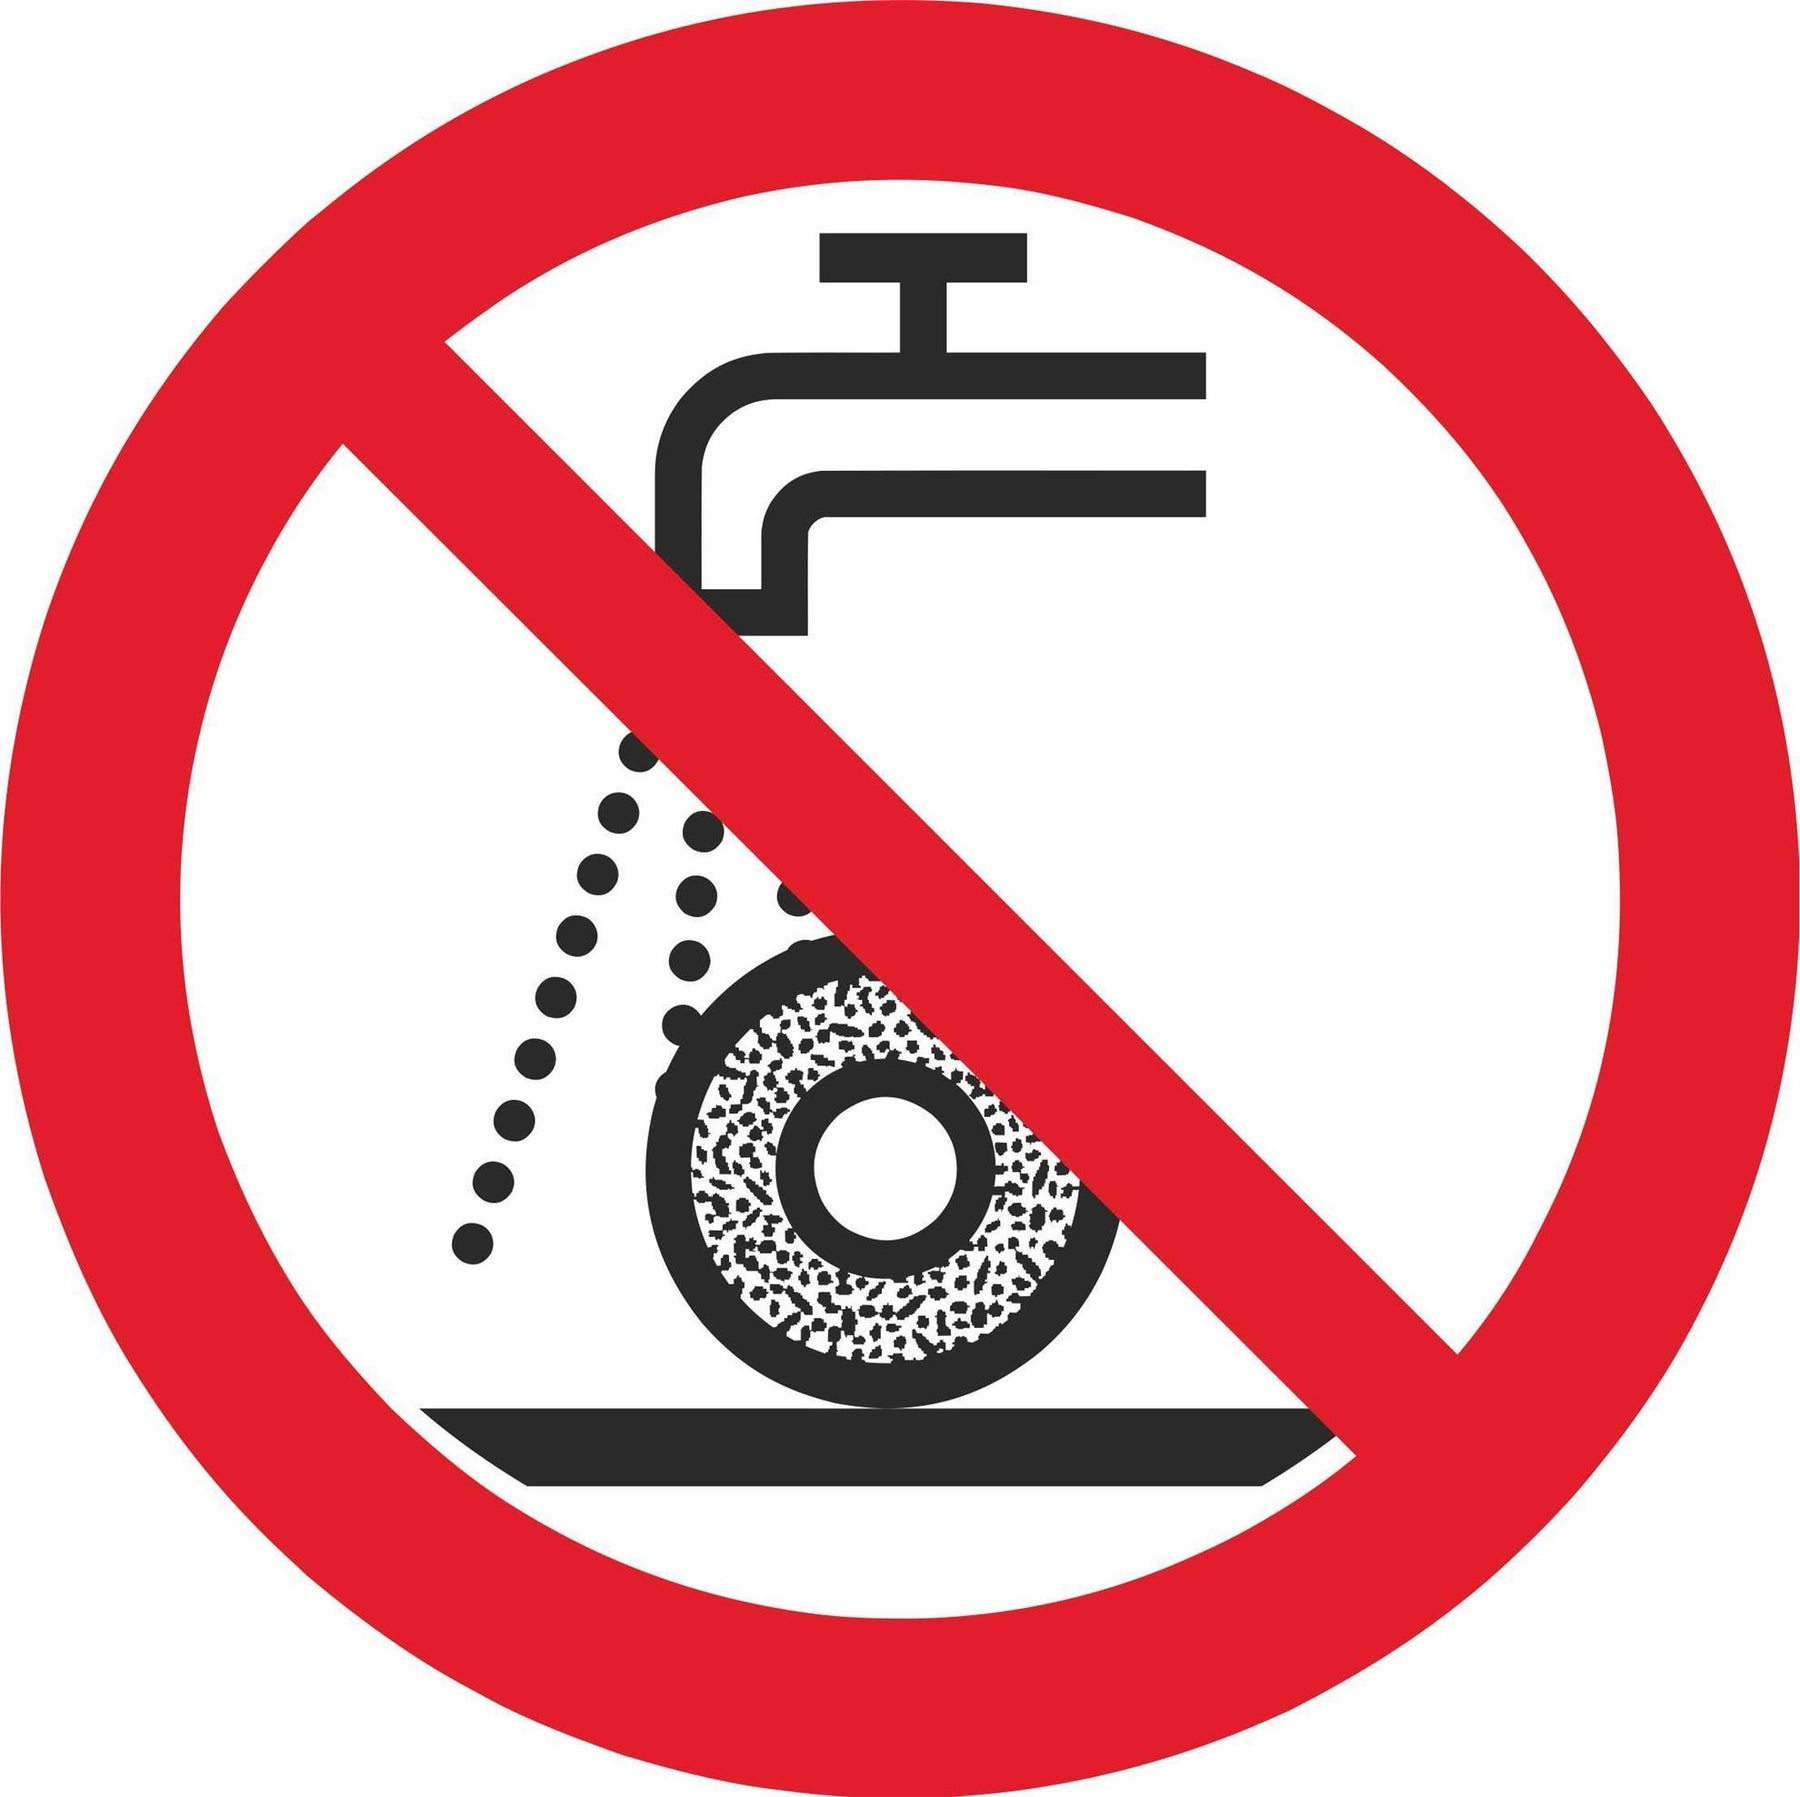 Do not use for wet grinding - Symbol sticker sheet